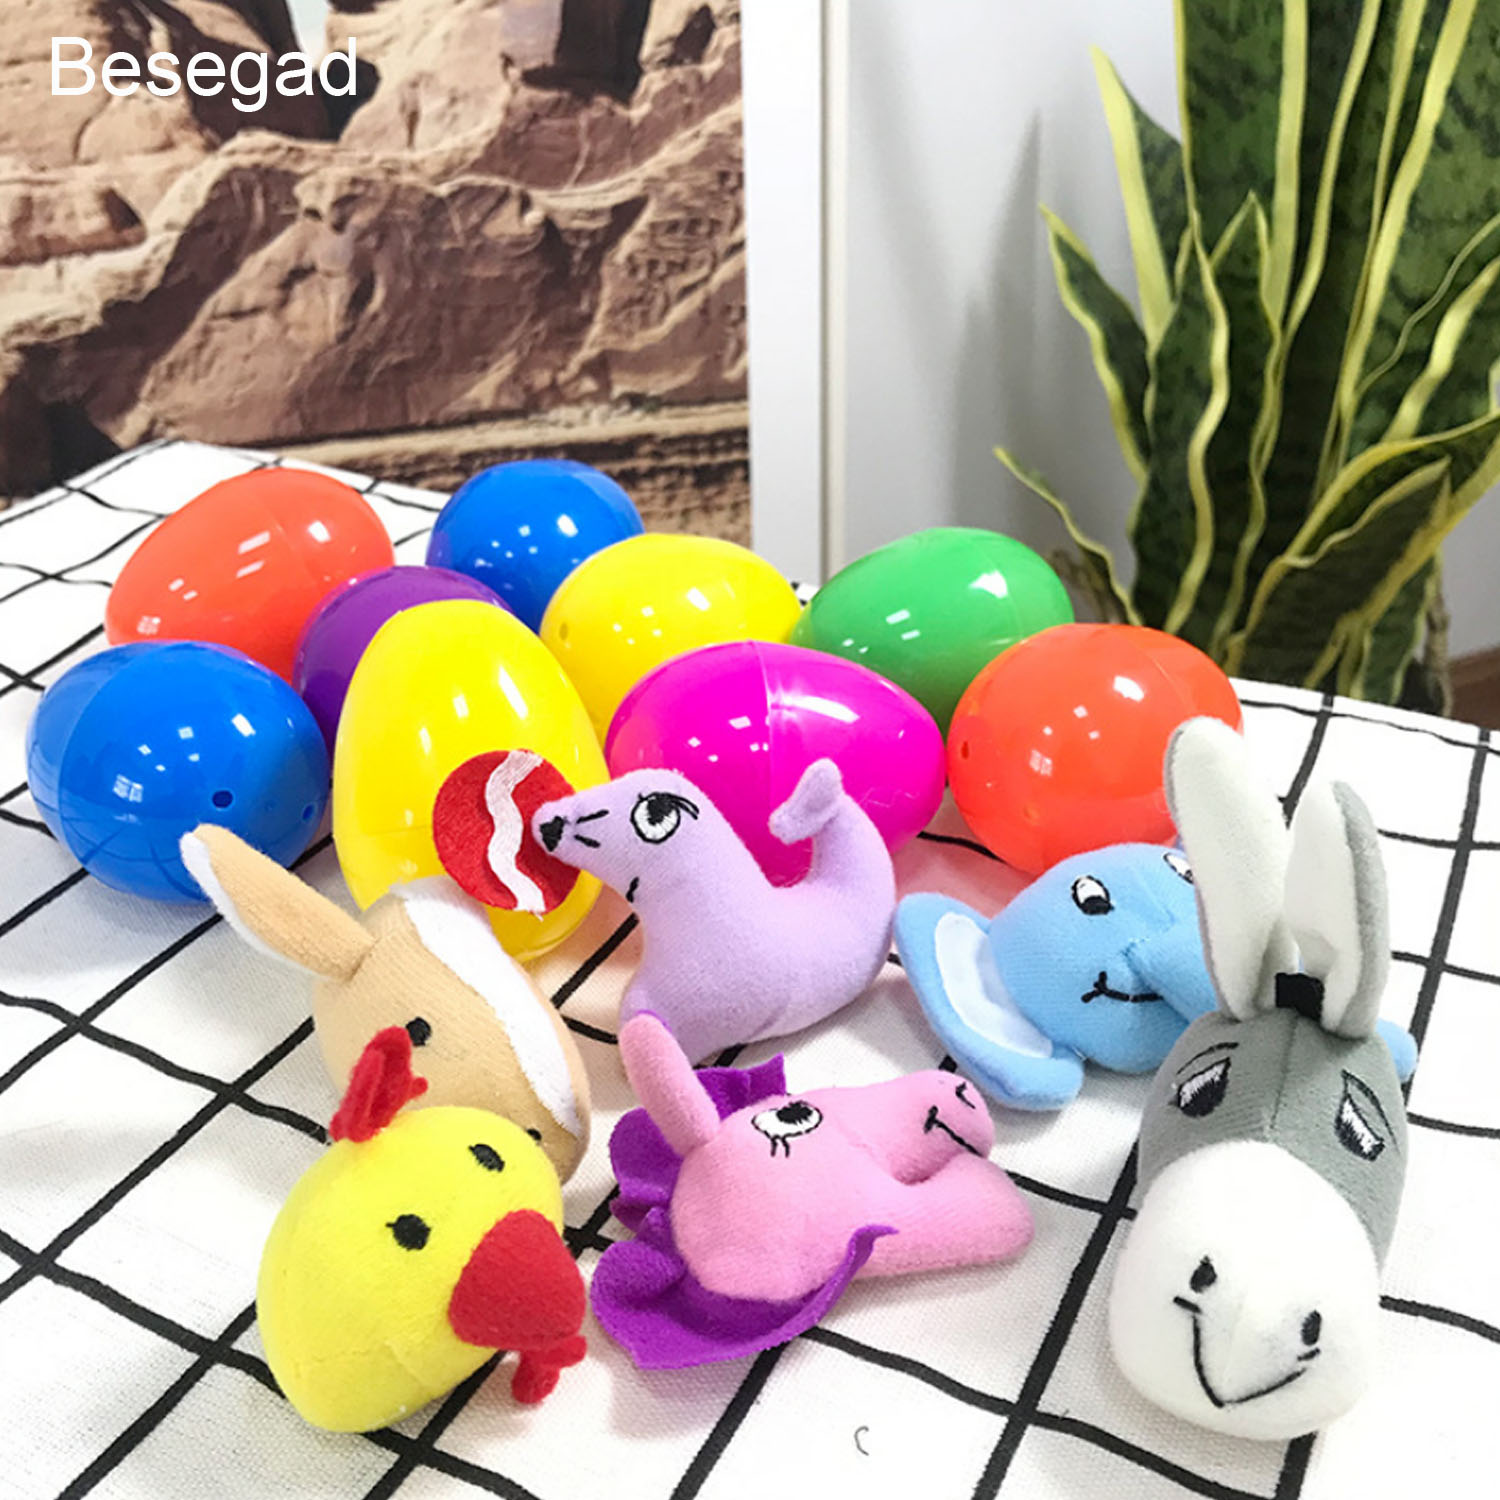 Besegad 12pcs Kids Plastic Colored Surprise Easter Eggs Filled With Different Kawaii Doll Easter Egg Toys For Easter Gifts